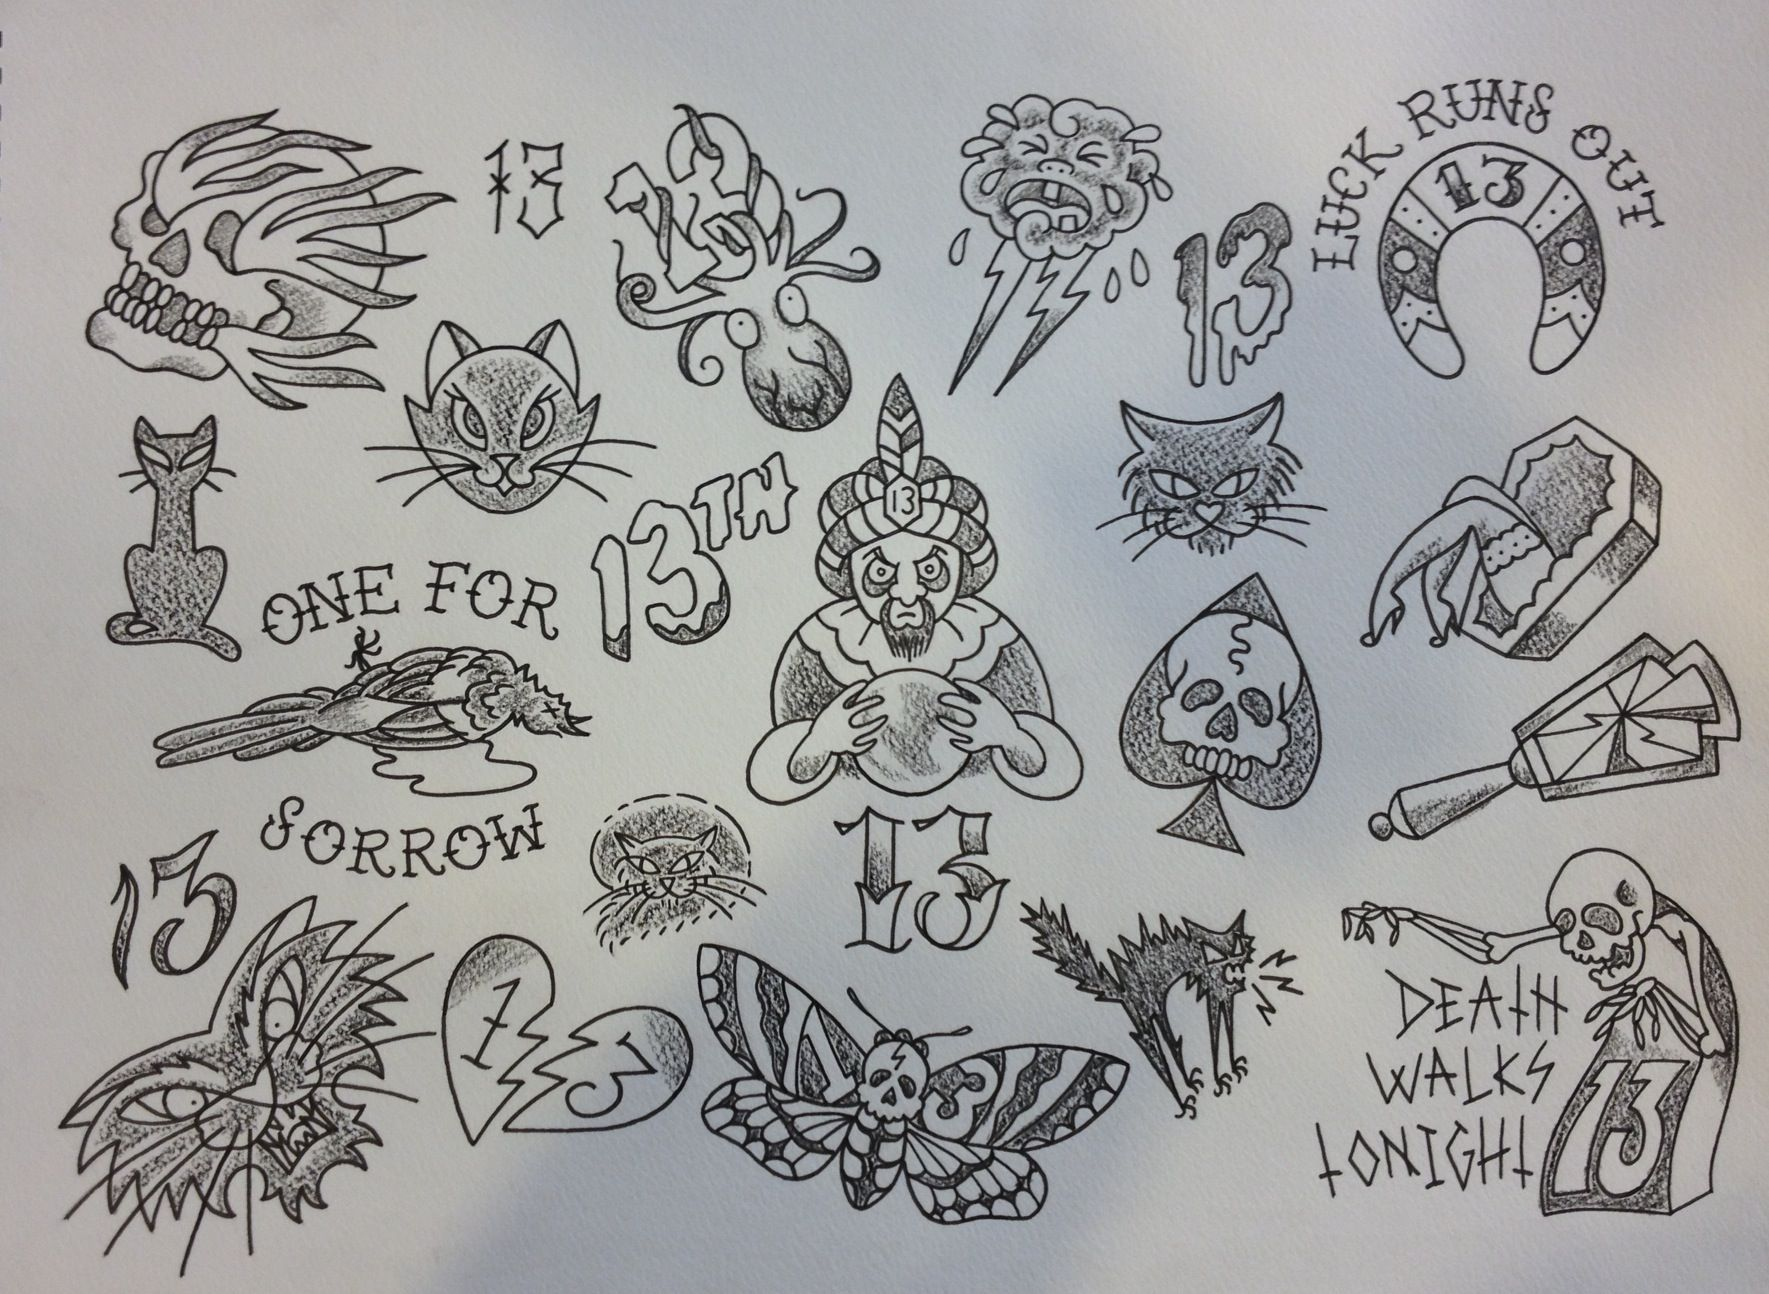 friday the 13th flash sheet Google Search Friday the